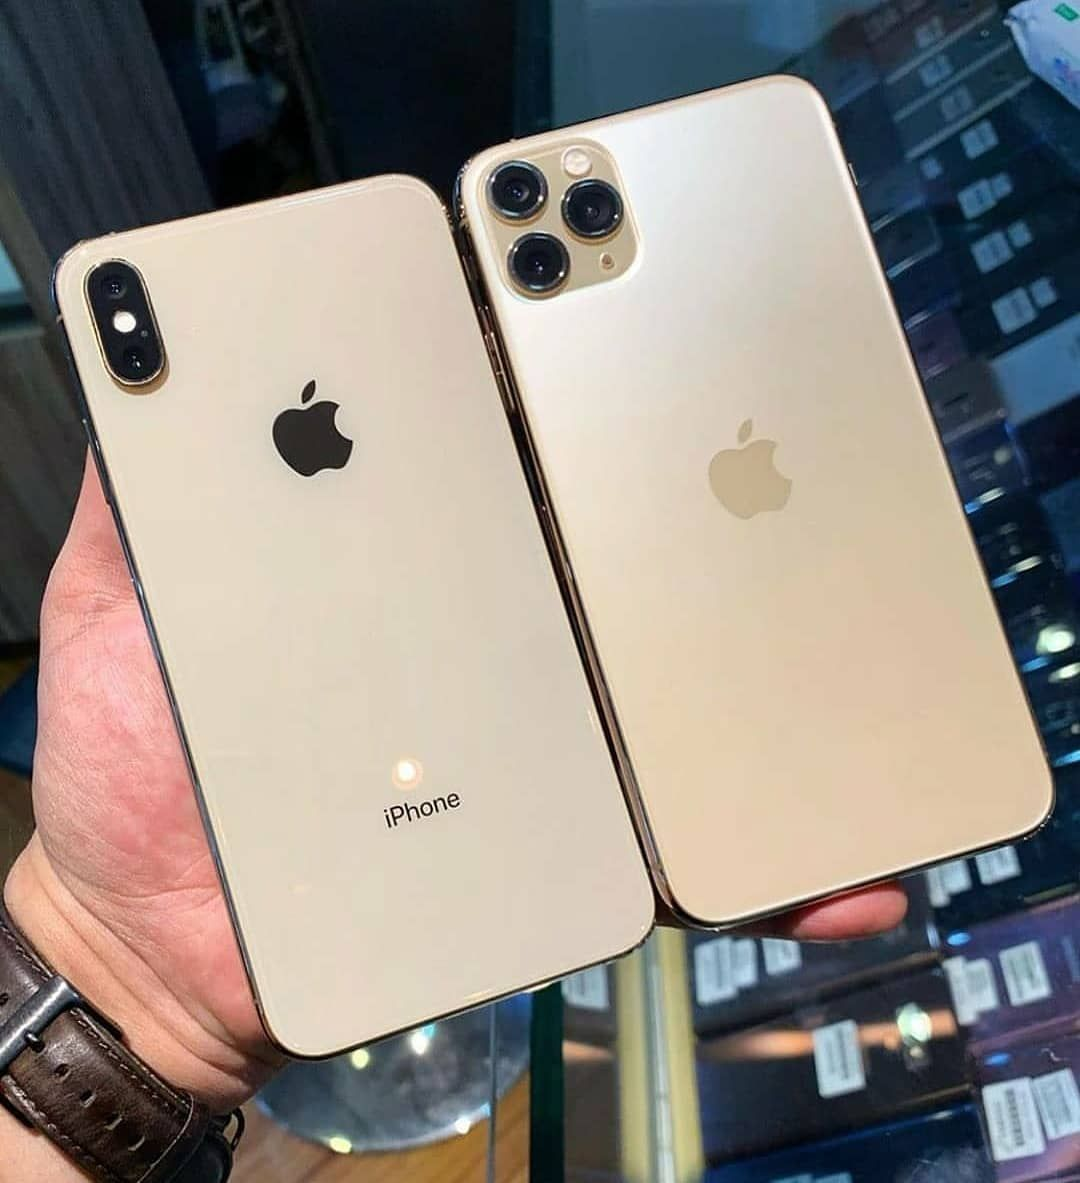 Reversetech On Instagram Iphone Xs Max Or Iphone 11pro Max Did You Like It Comment Your Thoughts Tag Iphone Apple Accessories Iphone Accessories